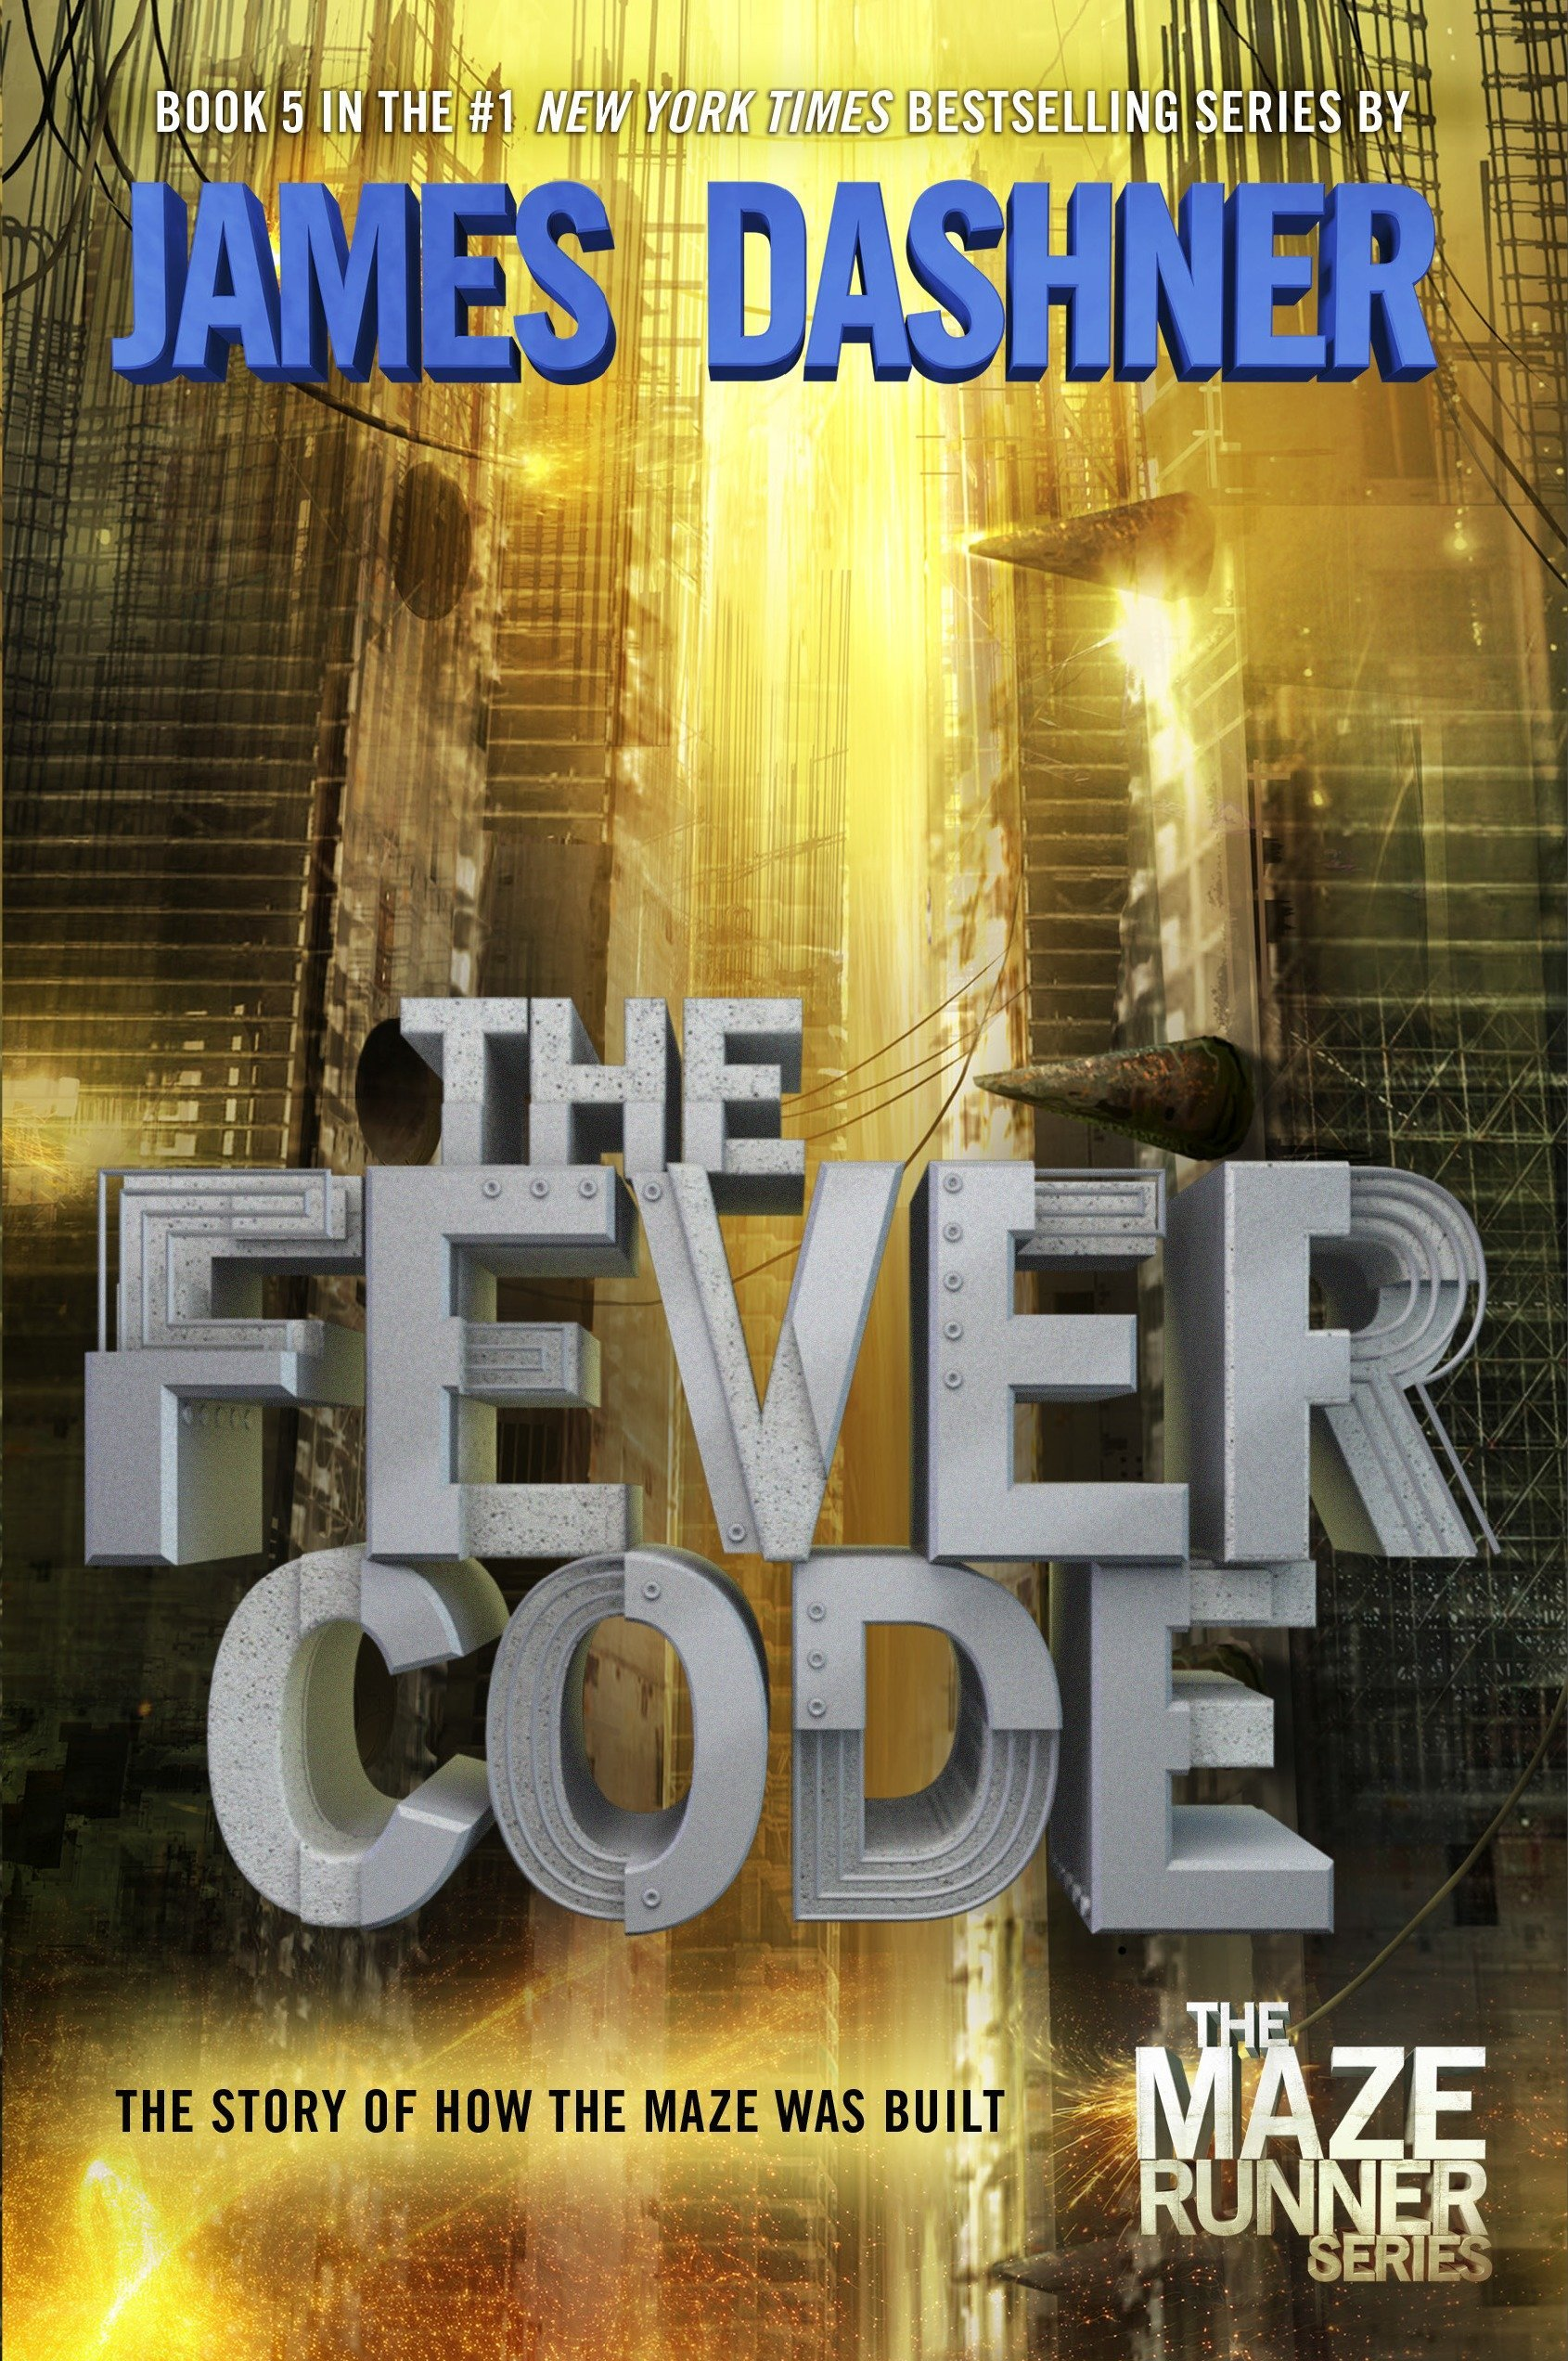 The Fever Code (Maze Runner, Book Five; Prequel): Amazon.es: James Dashner: Libros en idiomas extranjeros